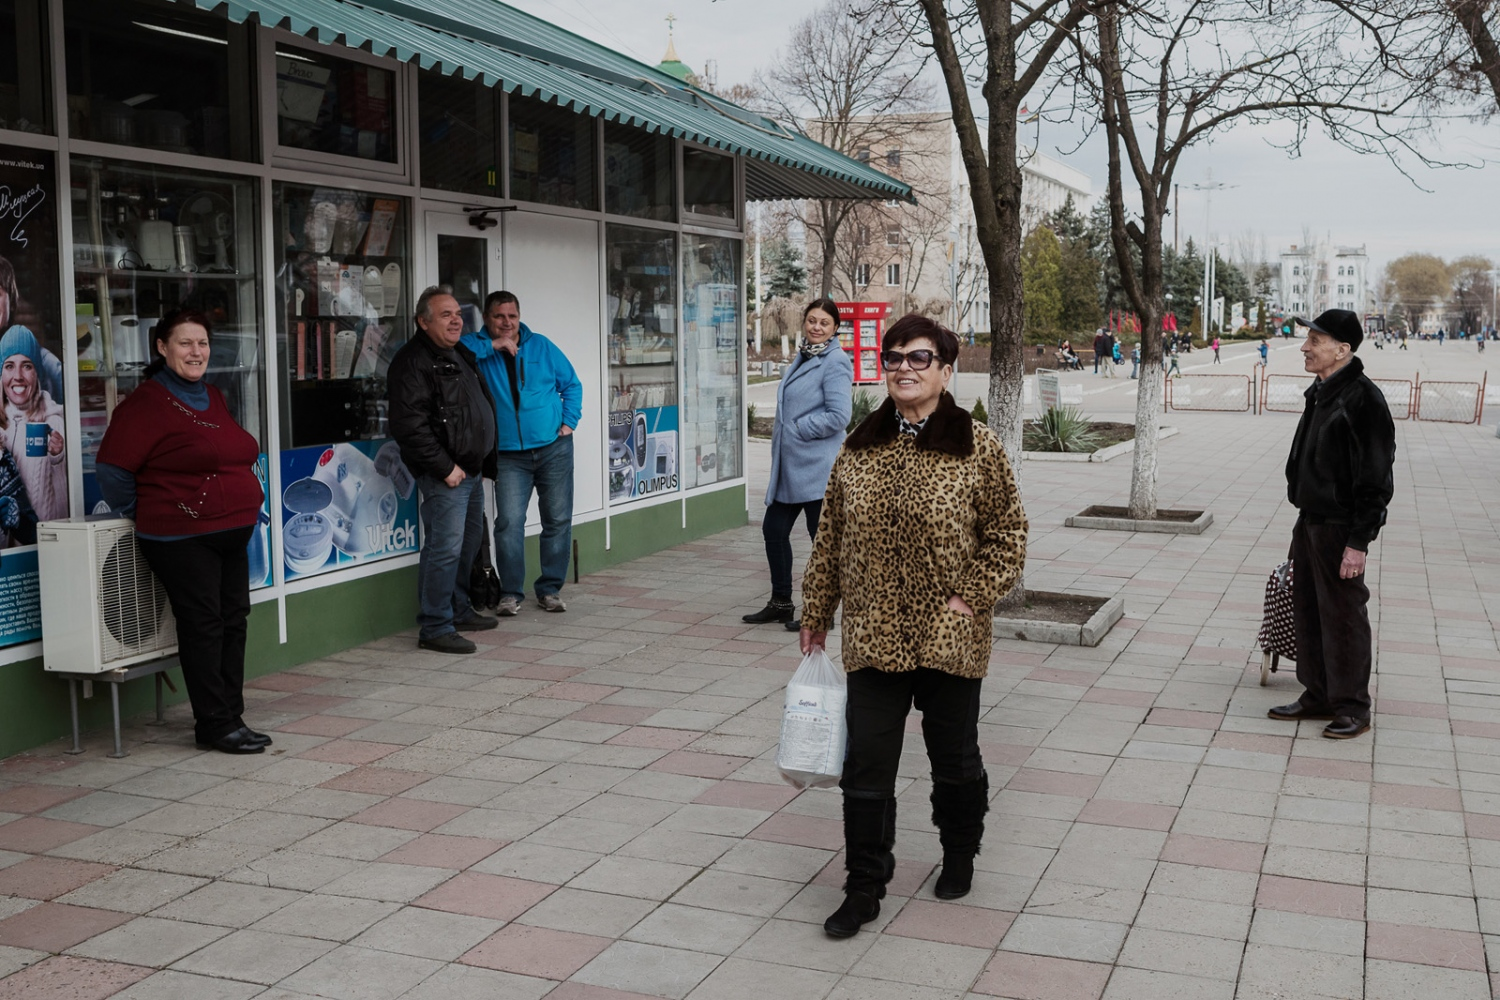 Even though its a public holiday, Defender of Fatherland Day, there is not many people out in the streets of Benderi, a border town to Moldova. Around 40% of the Transdniestrian population are now pensioners.